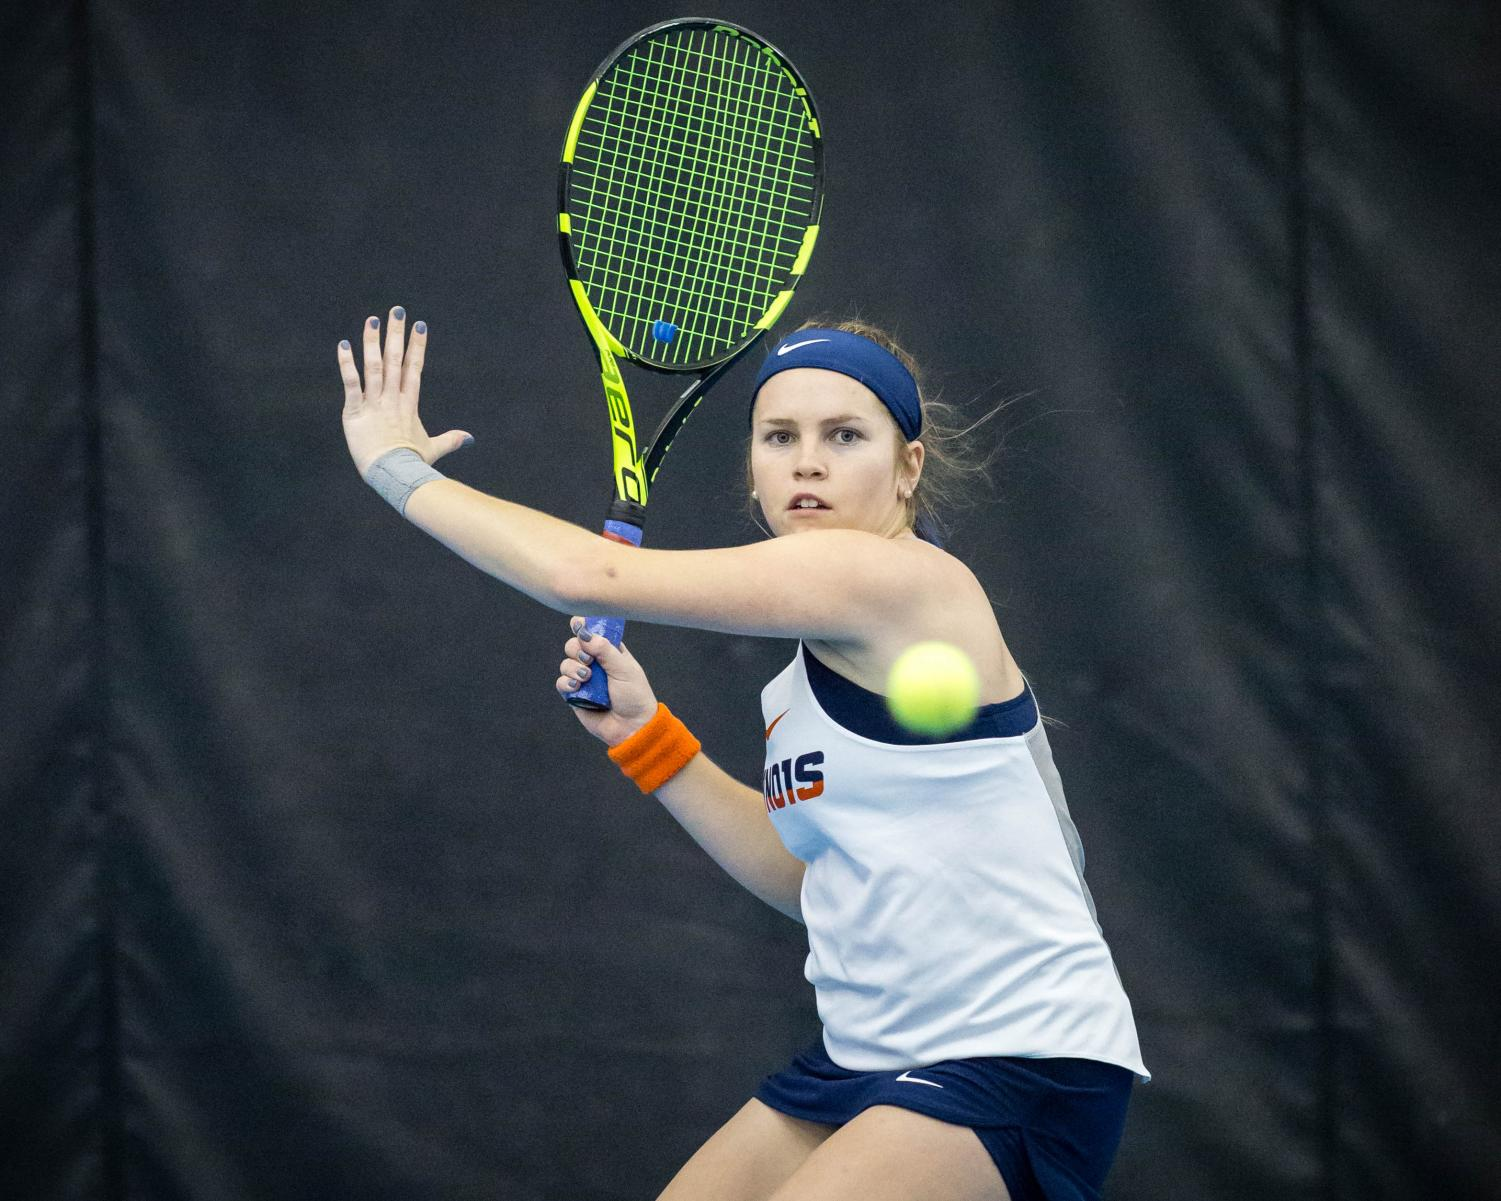 Illinois' Jaclyn Switkes gets ready to return the ball during the match against Texas at Atkins Tennis Center on Friday, Feb. 2, 2018. The Illini won 4-2.